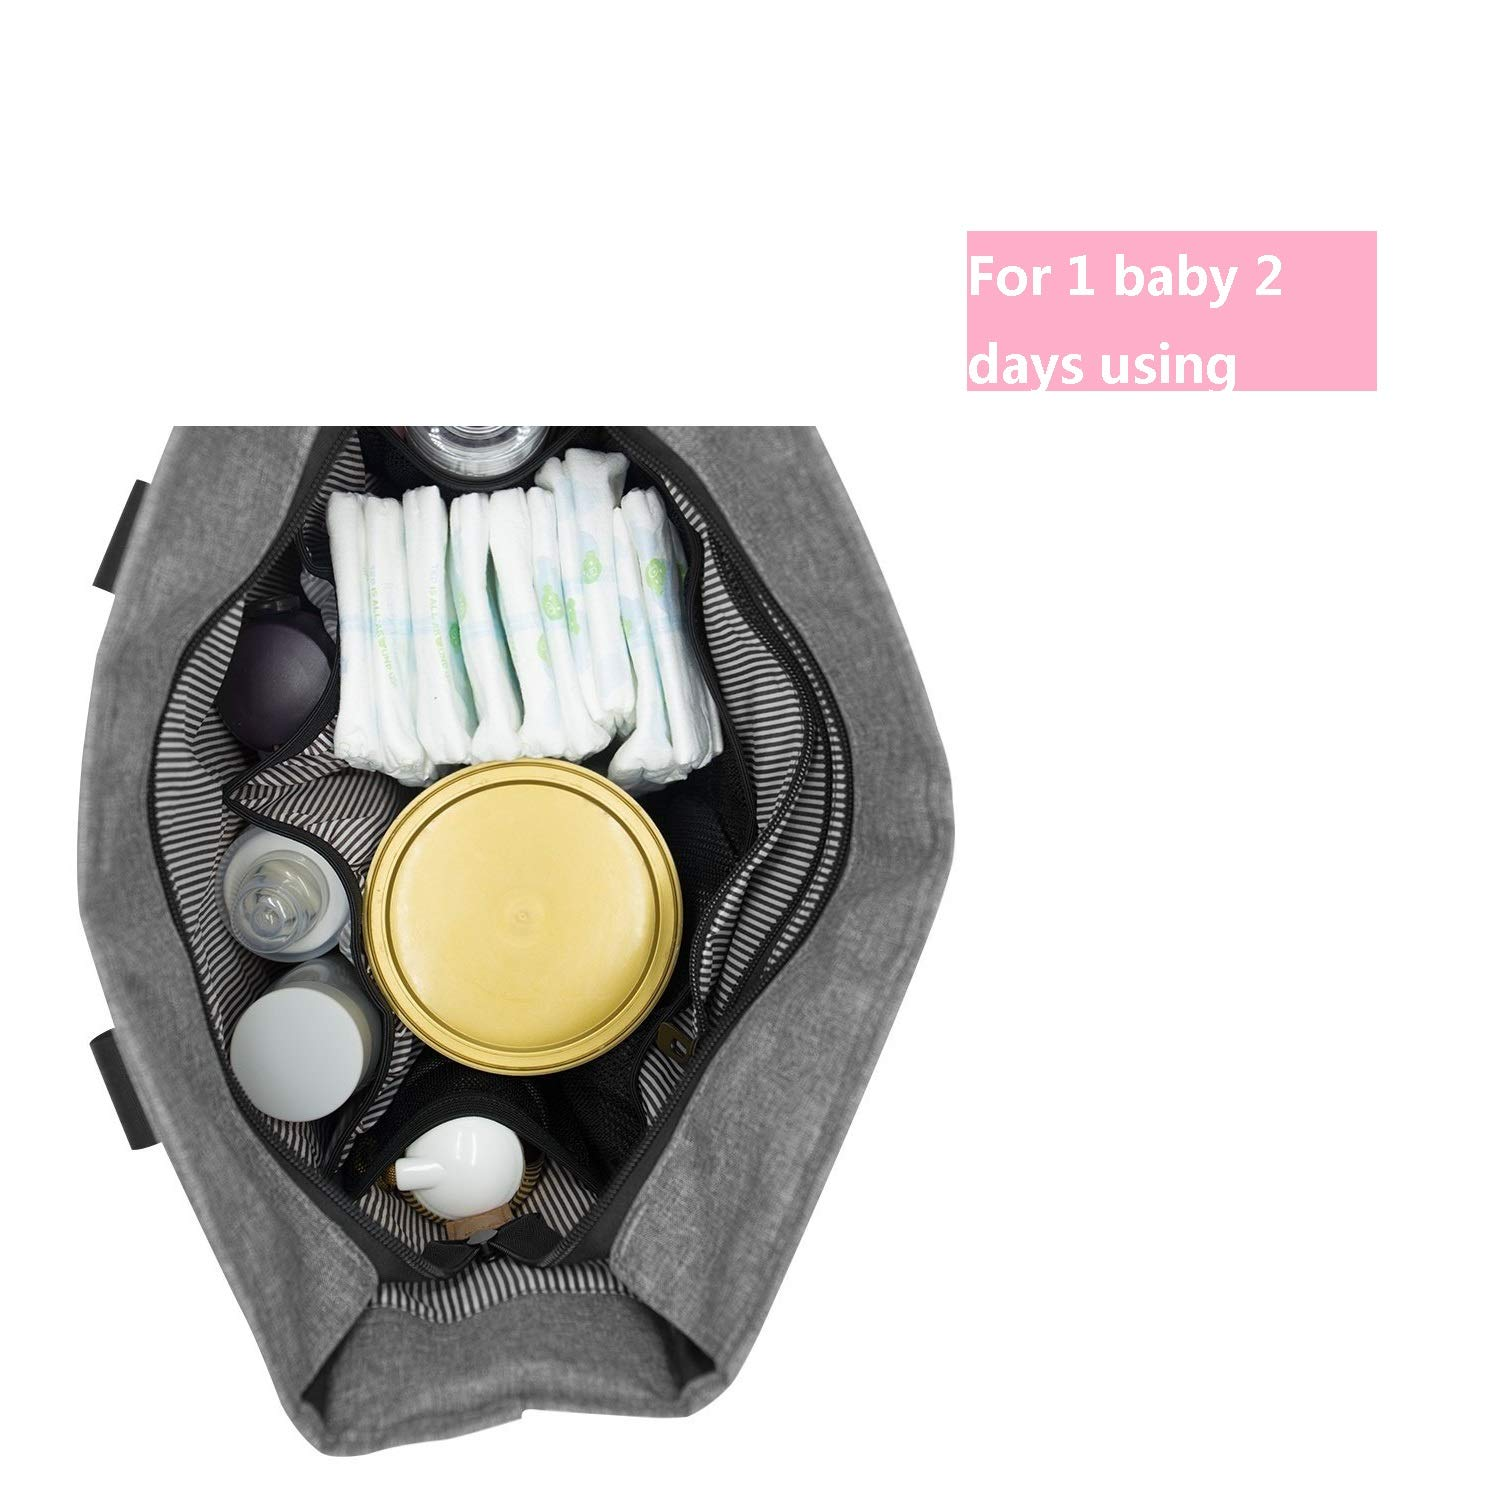 Diaper Bags Multi-Function - Unisex Large Nappy Bag Leather Handle with Changing Mat Shower Gifts for Mom Dad Travel 13 Pockets (Gray) Bable